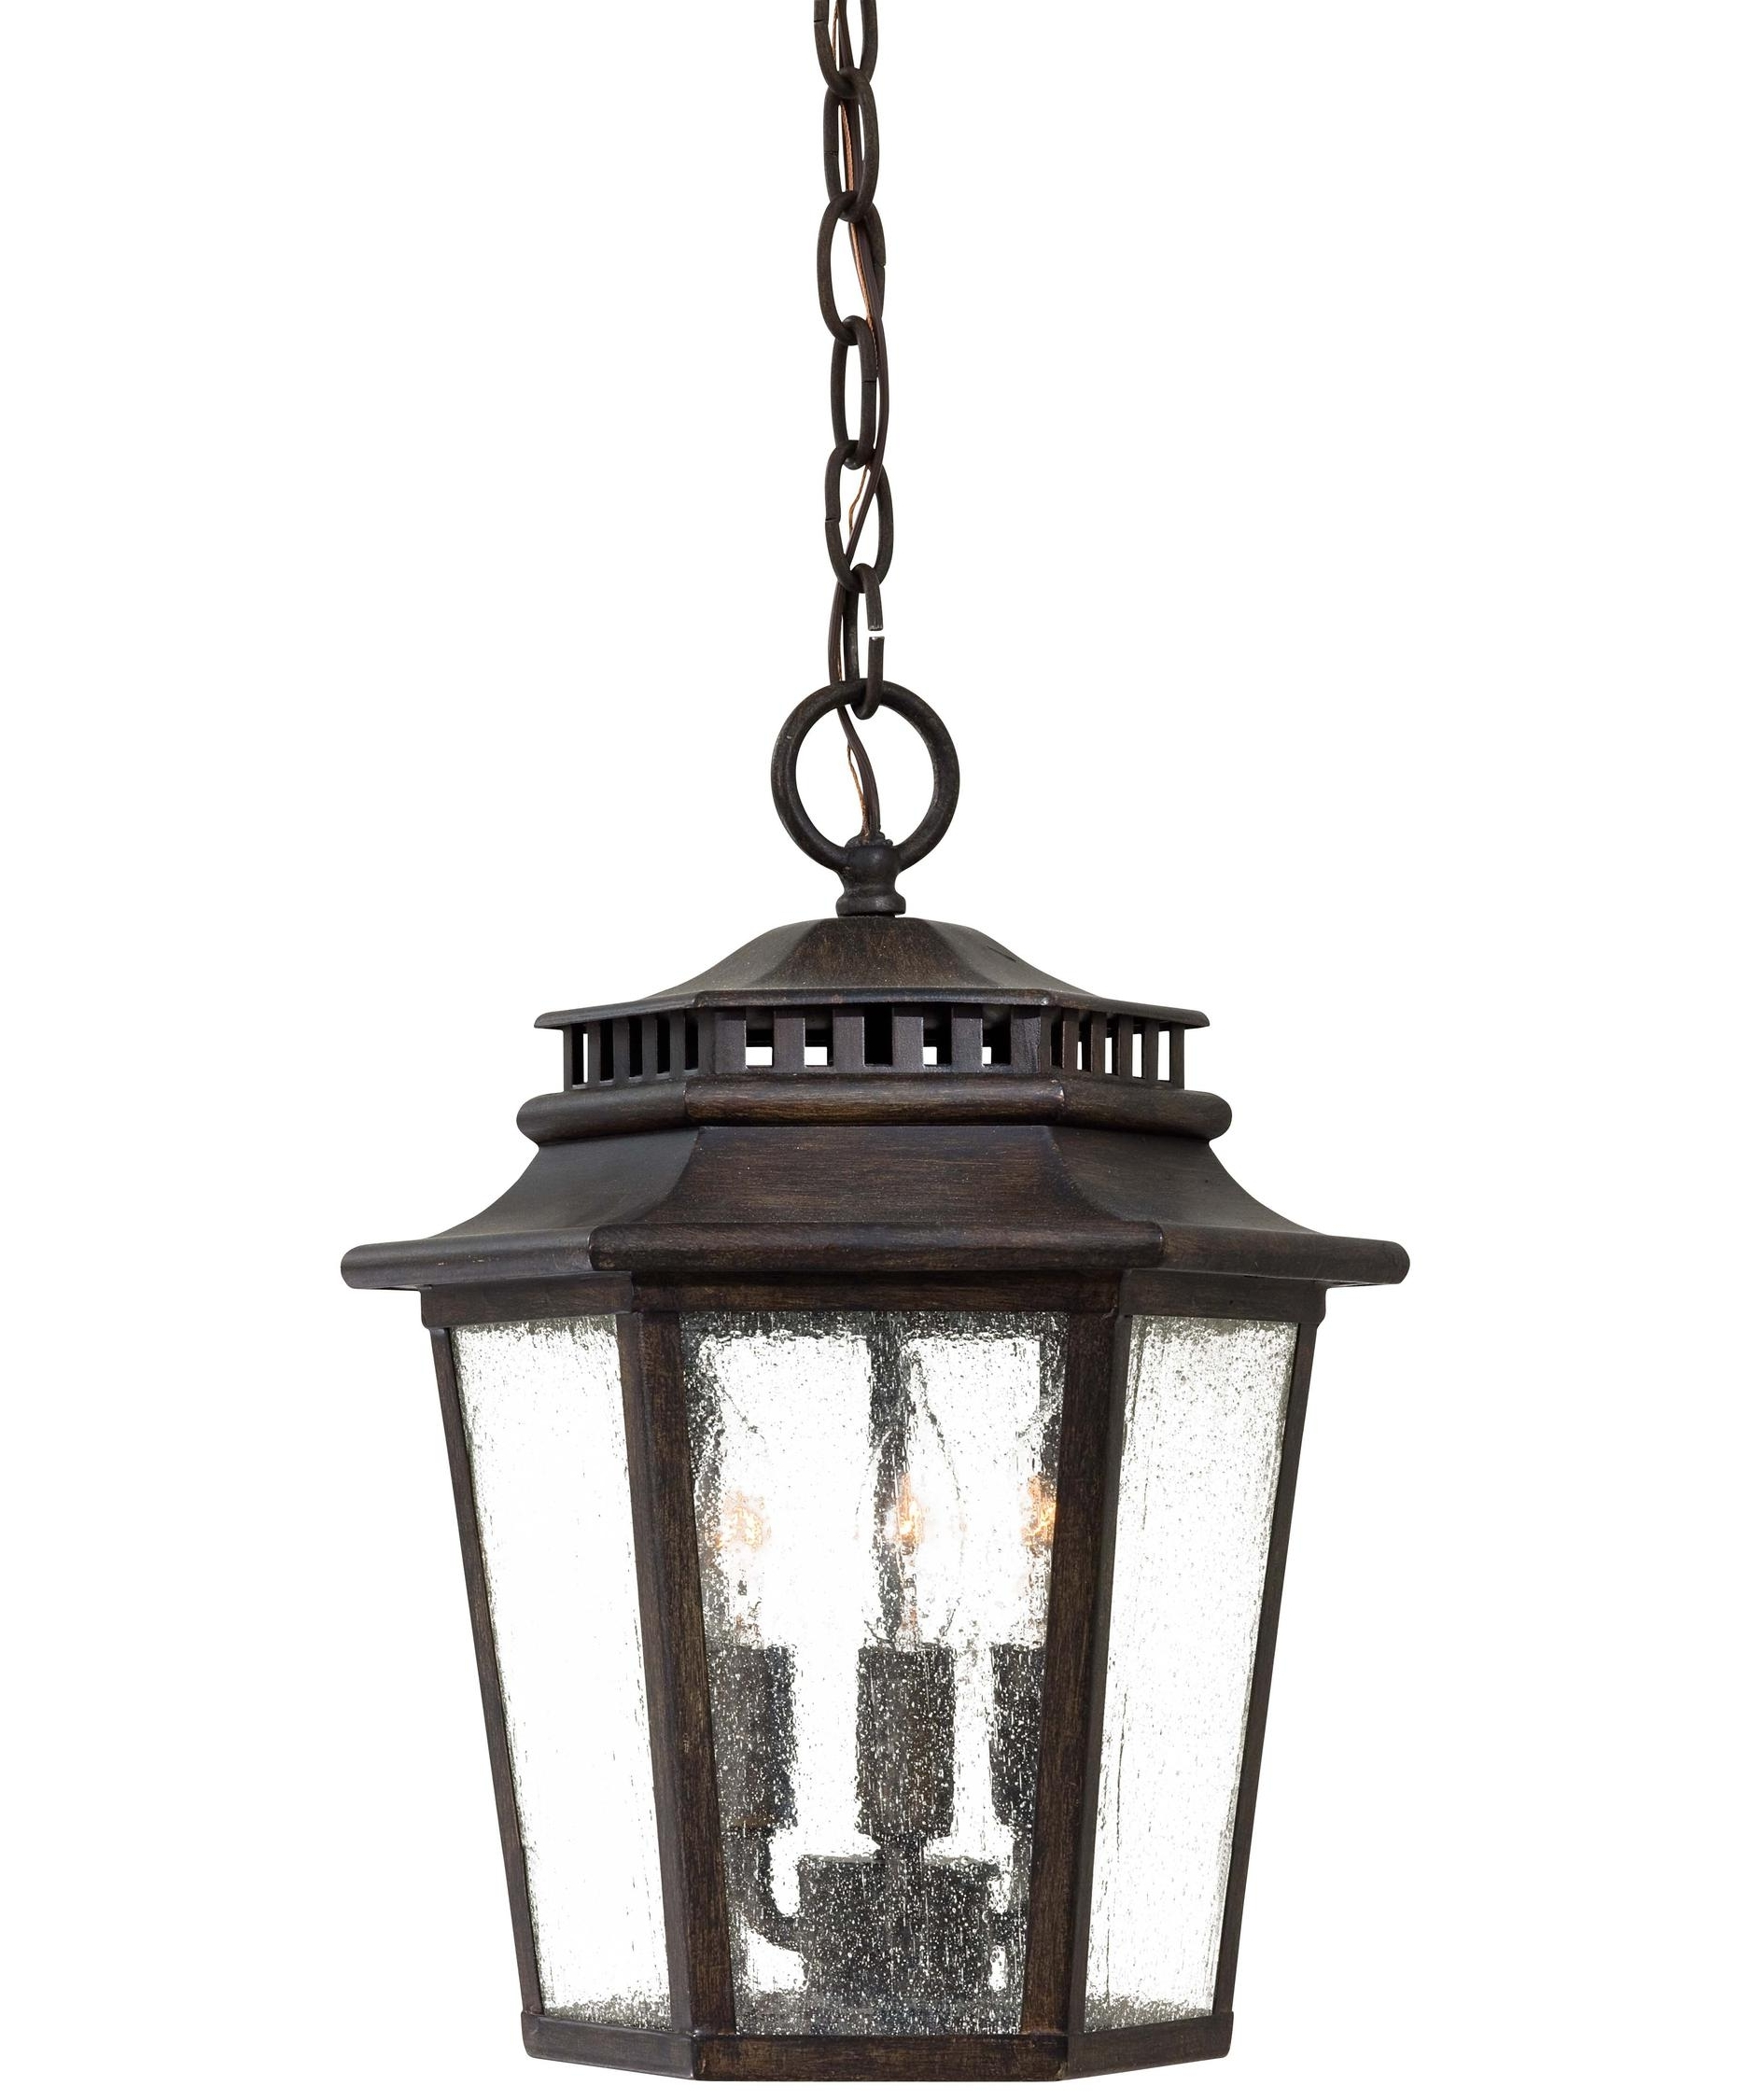 Solar Powered Outdoor Hanging Lanterns Intended For Best And Newest Large Hanging Outdoor Lights – Outdoor Designs (View 10 of 20)